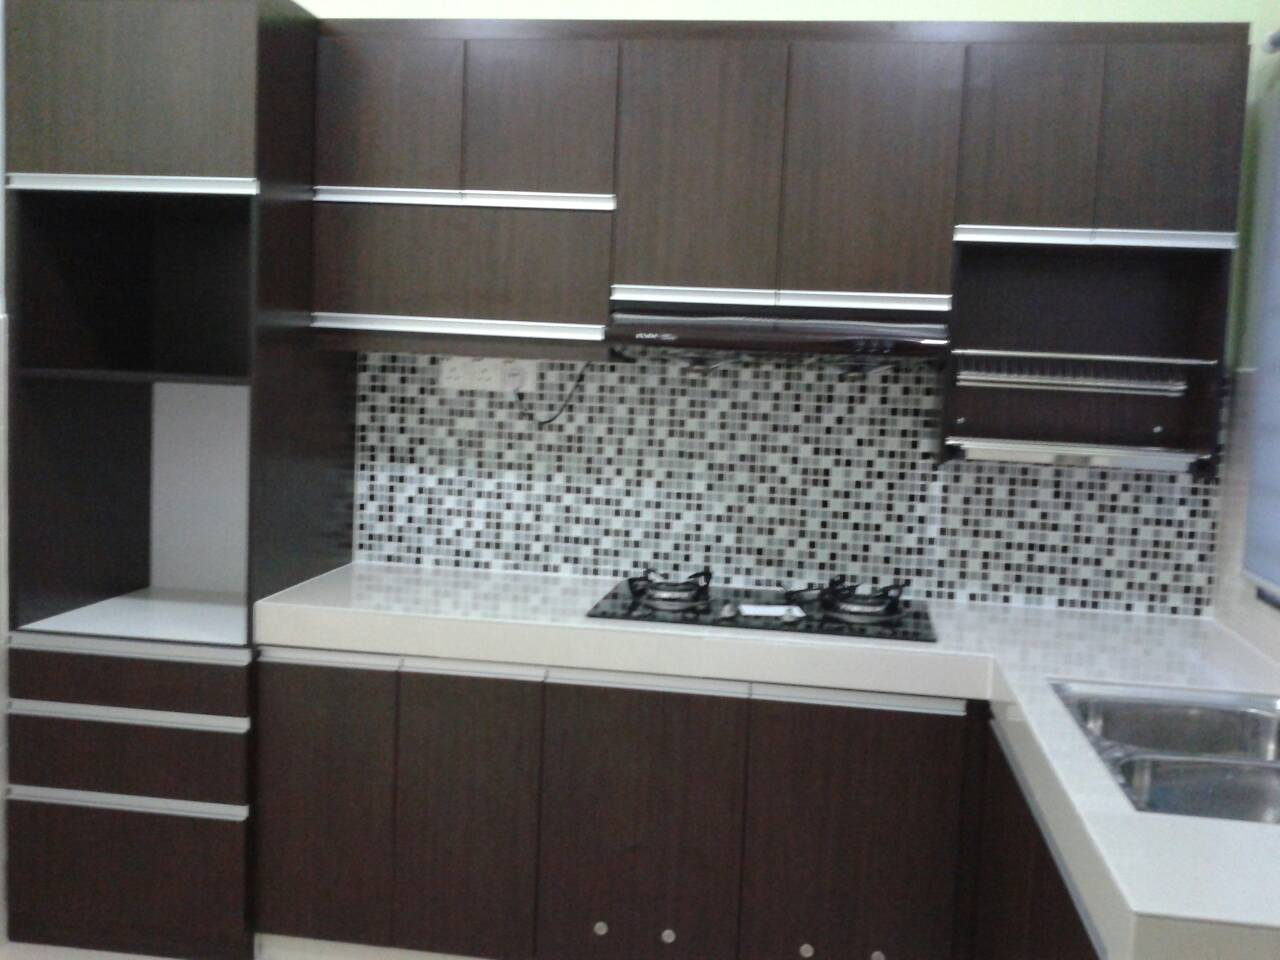 Kitchen Cabinet Idaman